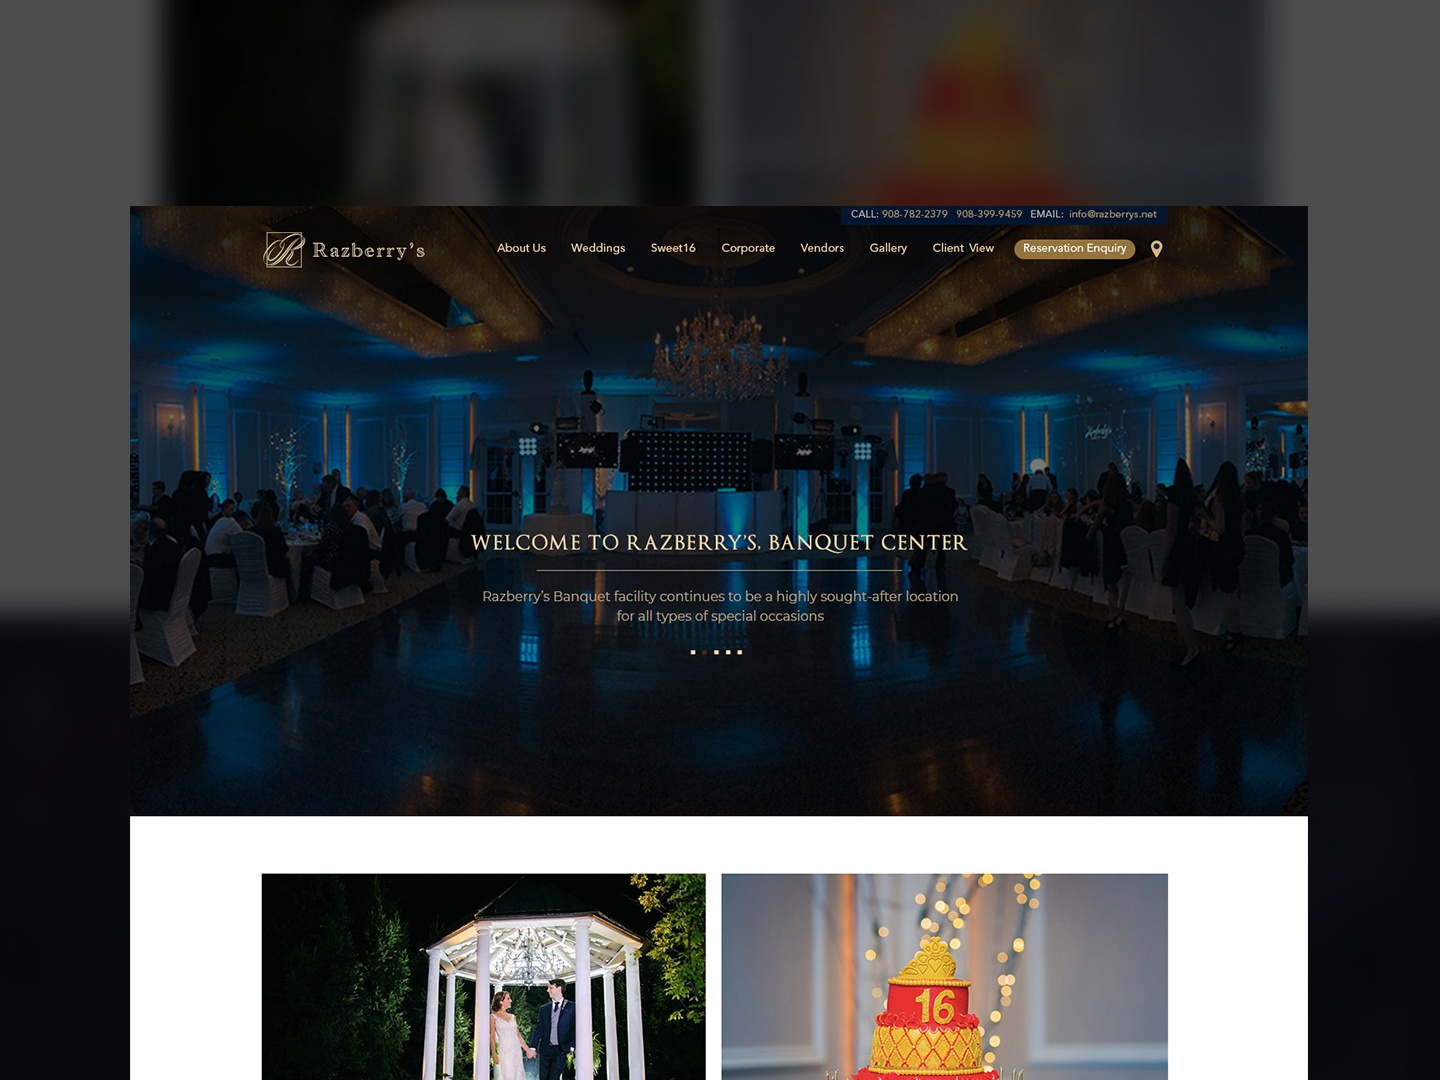 Razberry Banquet hall website ui royal theme dark design dark mode dark ui ux design ux  ui ui website website banner website concept website design homepage design homepage banquet hall ad campaign illustration ui ux design best ui ux solution design work